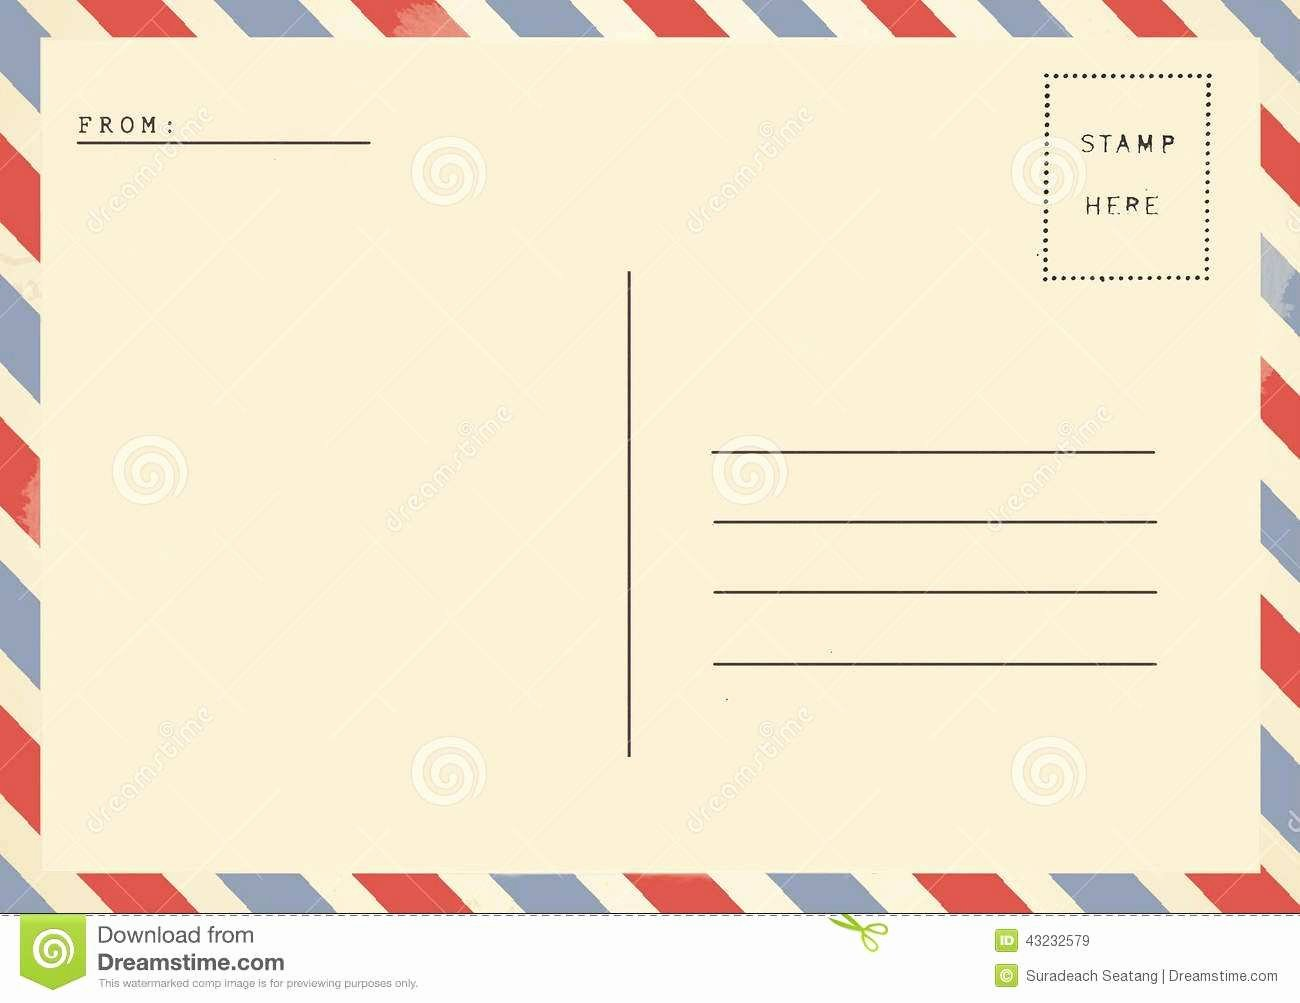 Blank Postcard Template Word Lovely Inspirational Free Blank Postcard Templates for Word